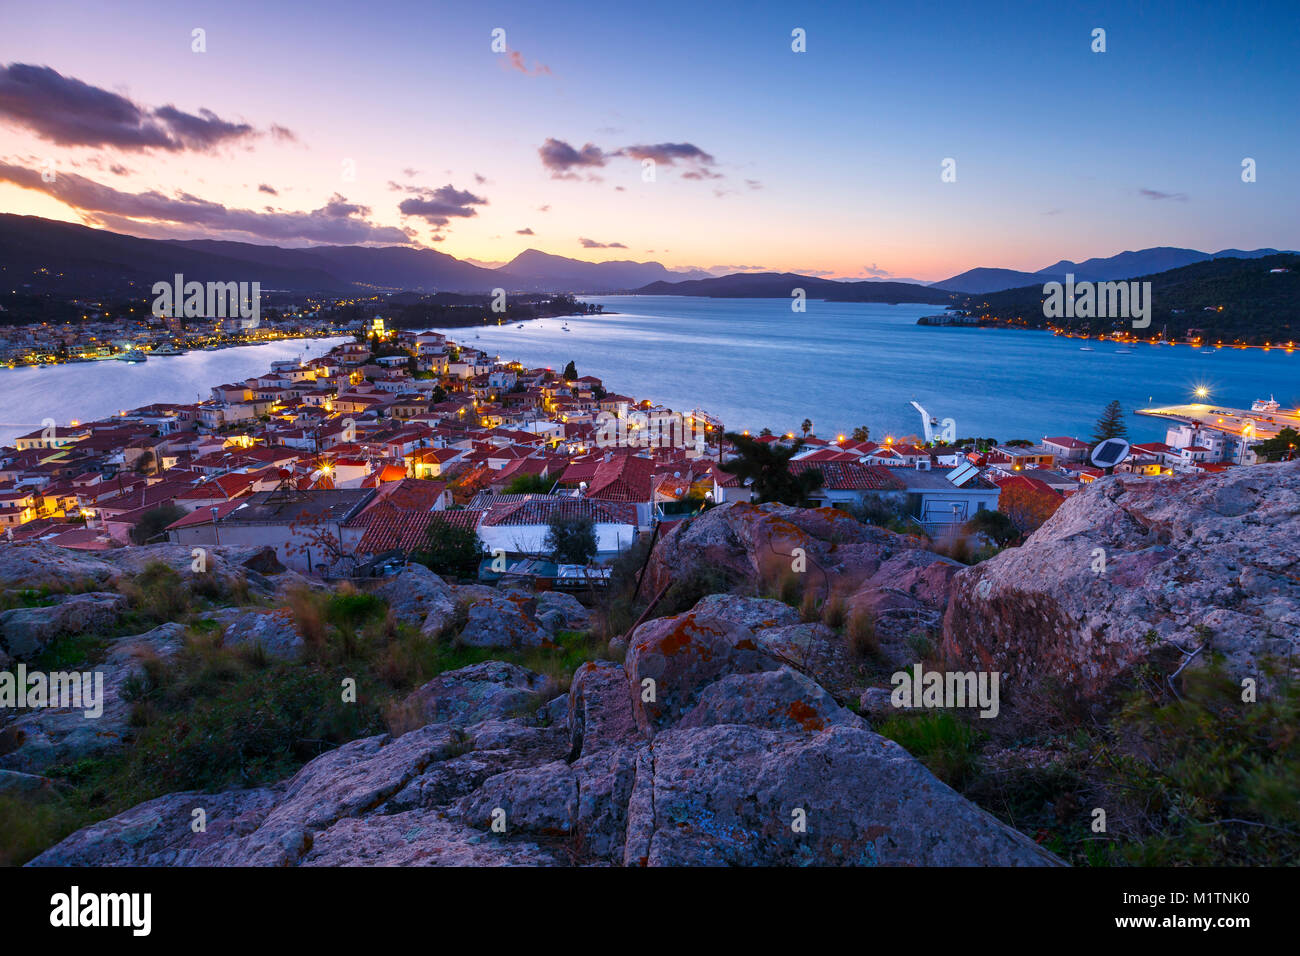 View of Poros island and Galatas village in Peloponnese, Greece. - Stock Image